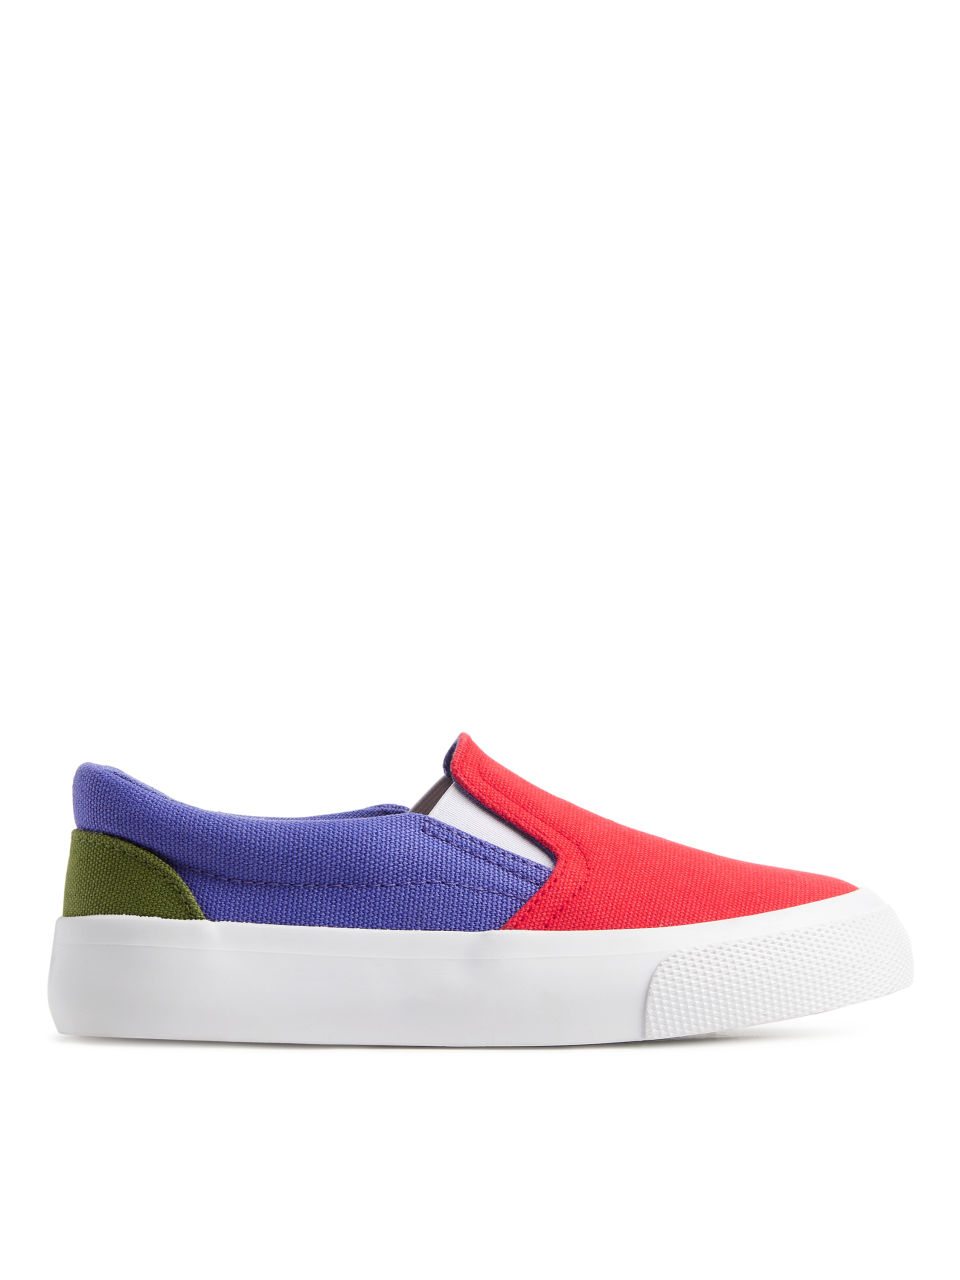 Slip-On Trainers - Red